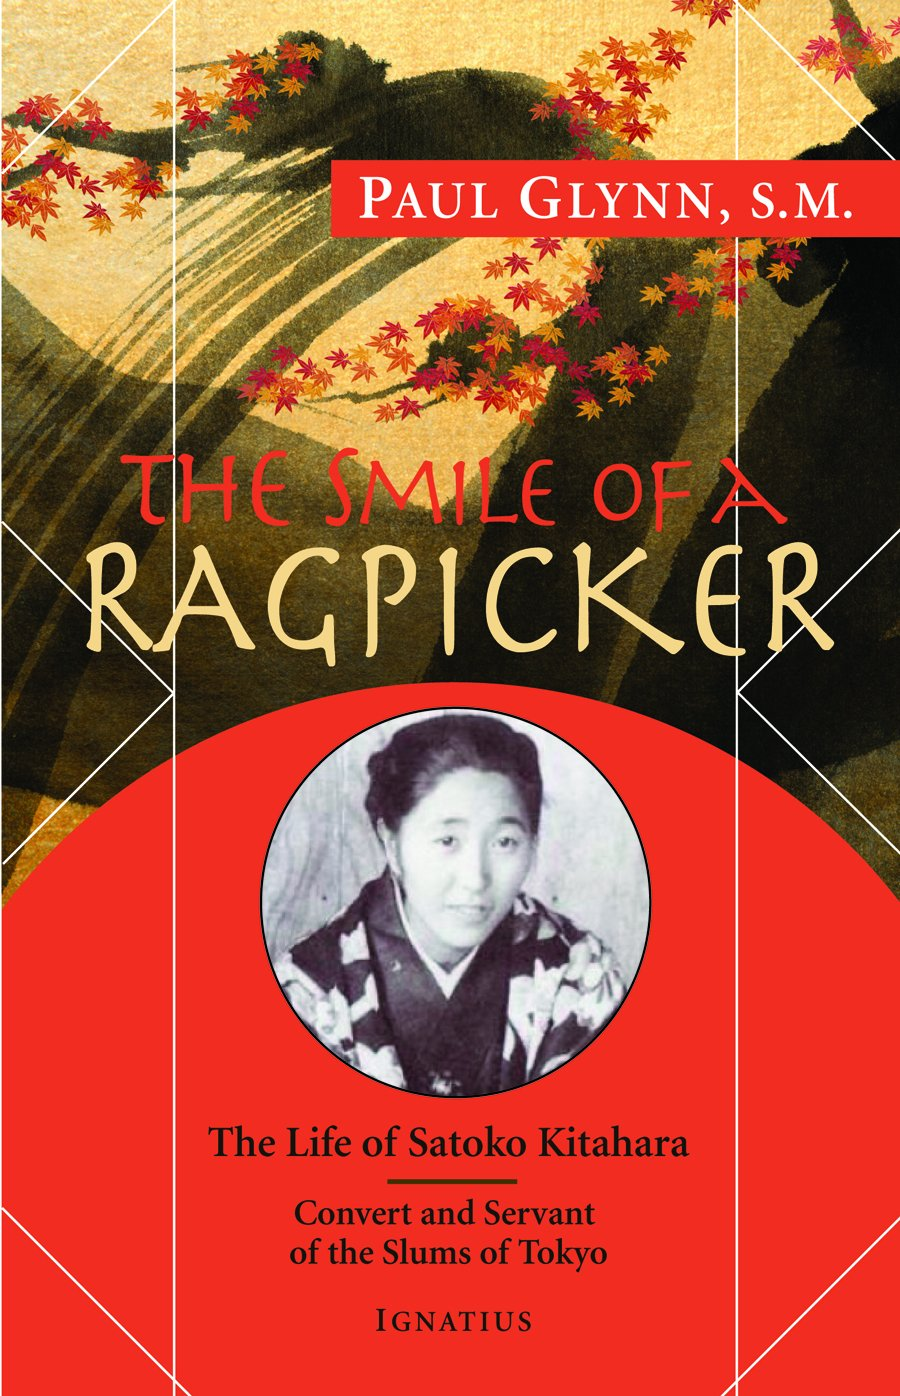 Read Online The Smile of a Ragpicker: The Life of Satoko Kitahara Convert and Servant of the Slums of Tokyo PDF